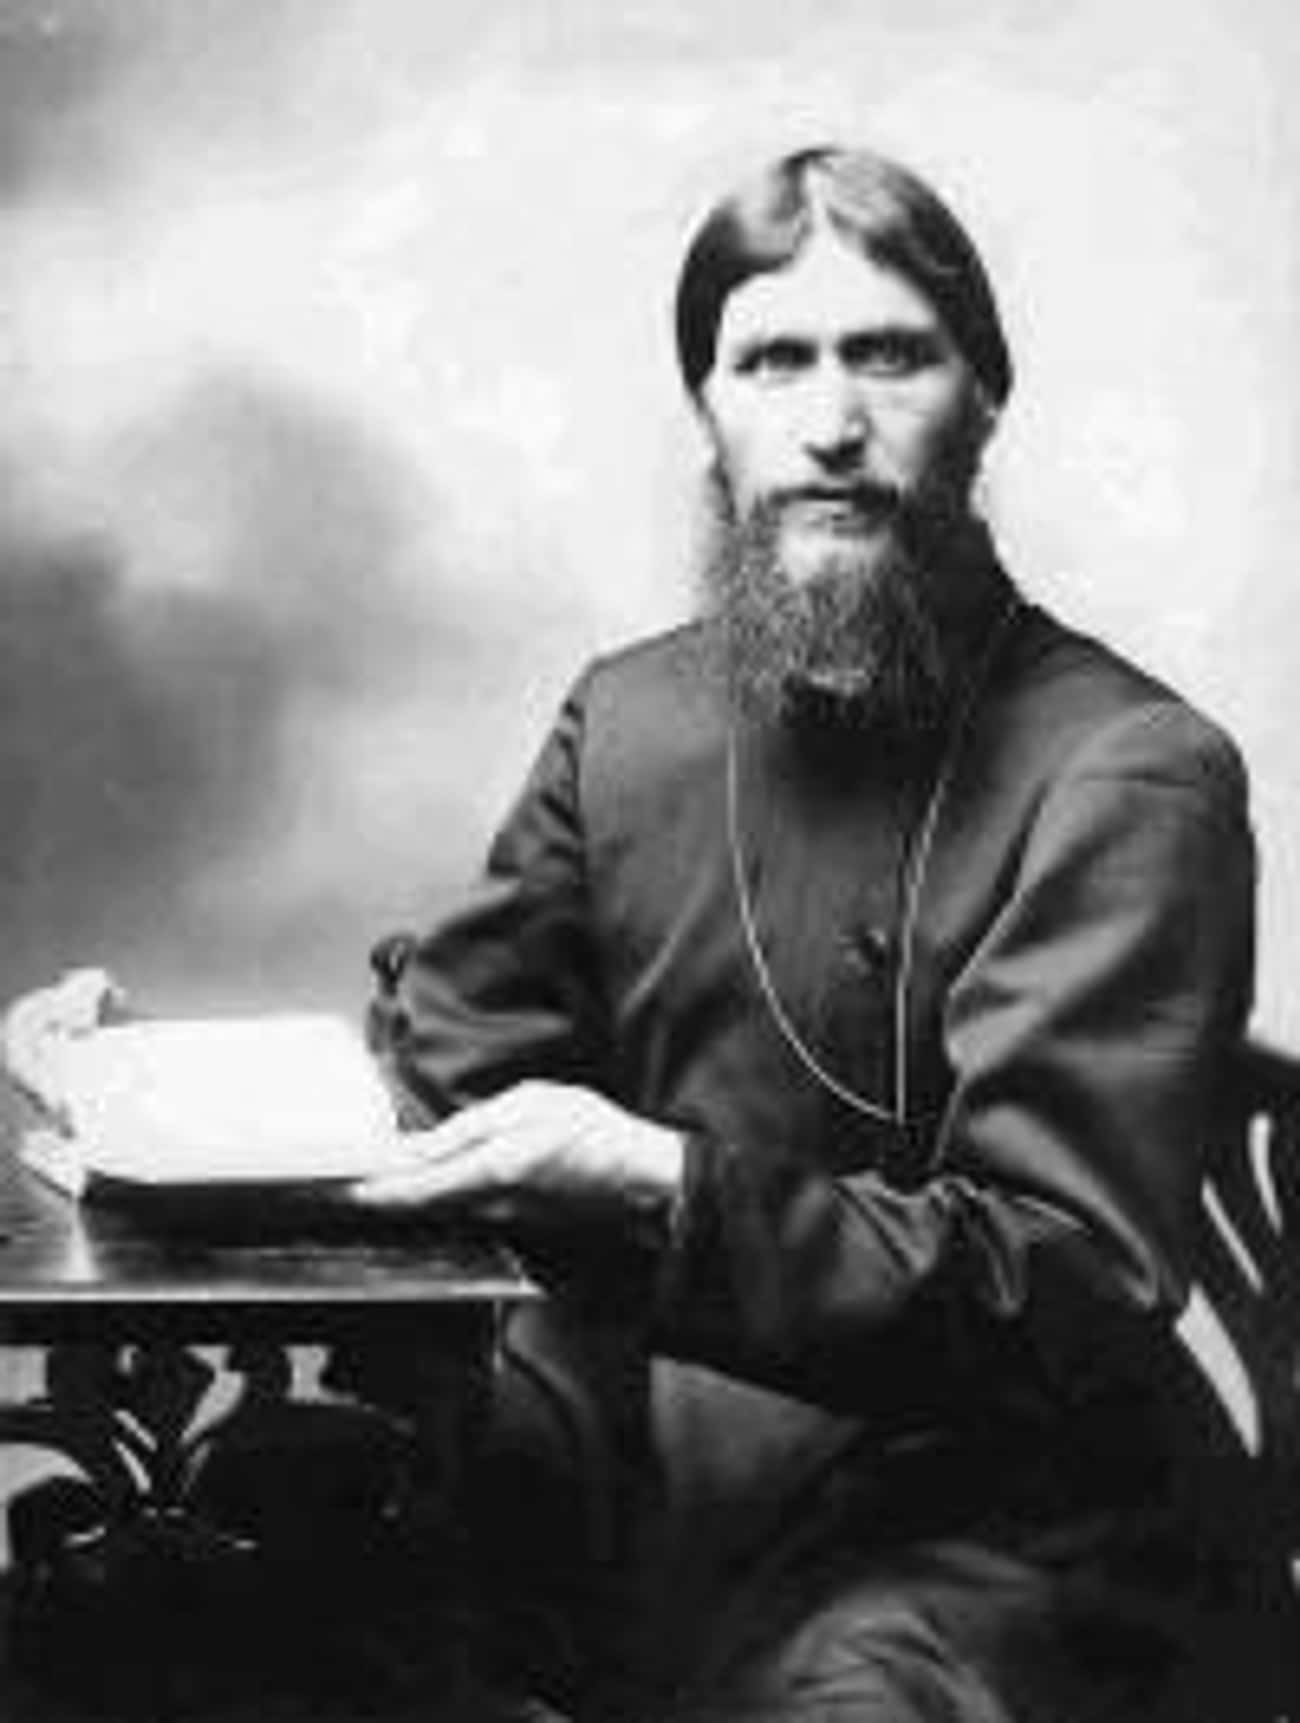 Grigori Rasputin is listed (or ranked) 4 on the list Famous People Who Drowned